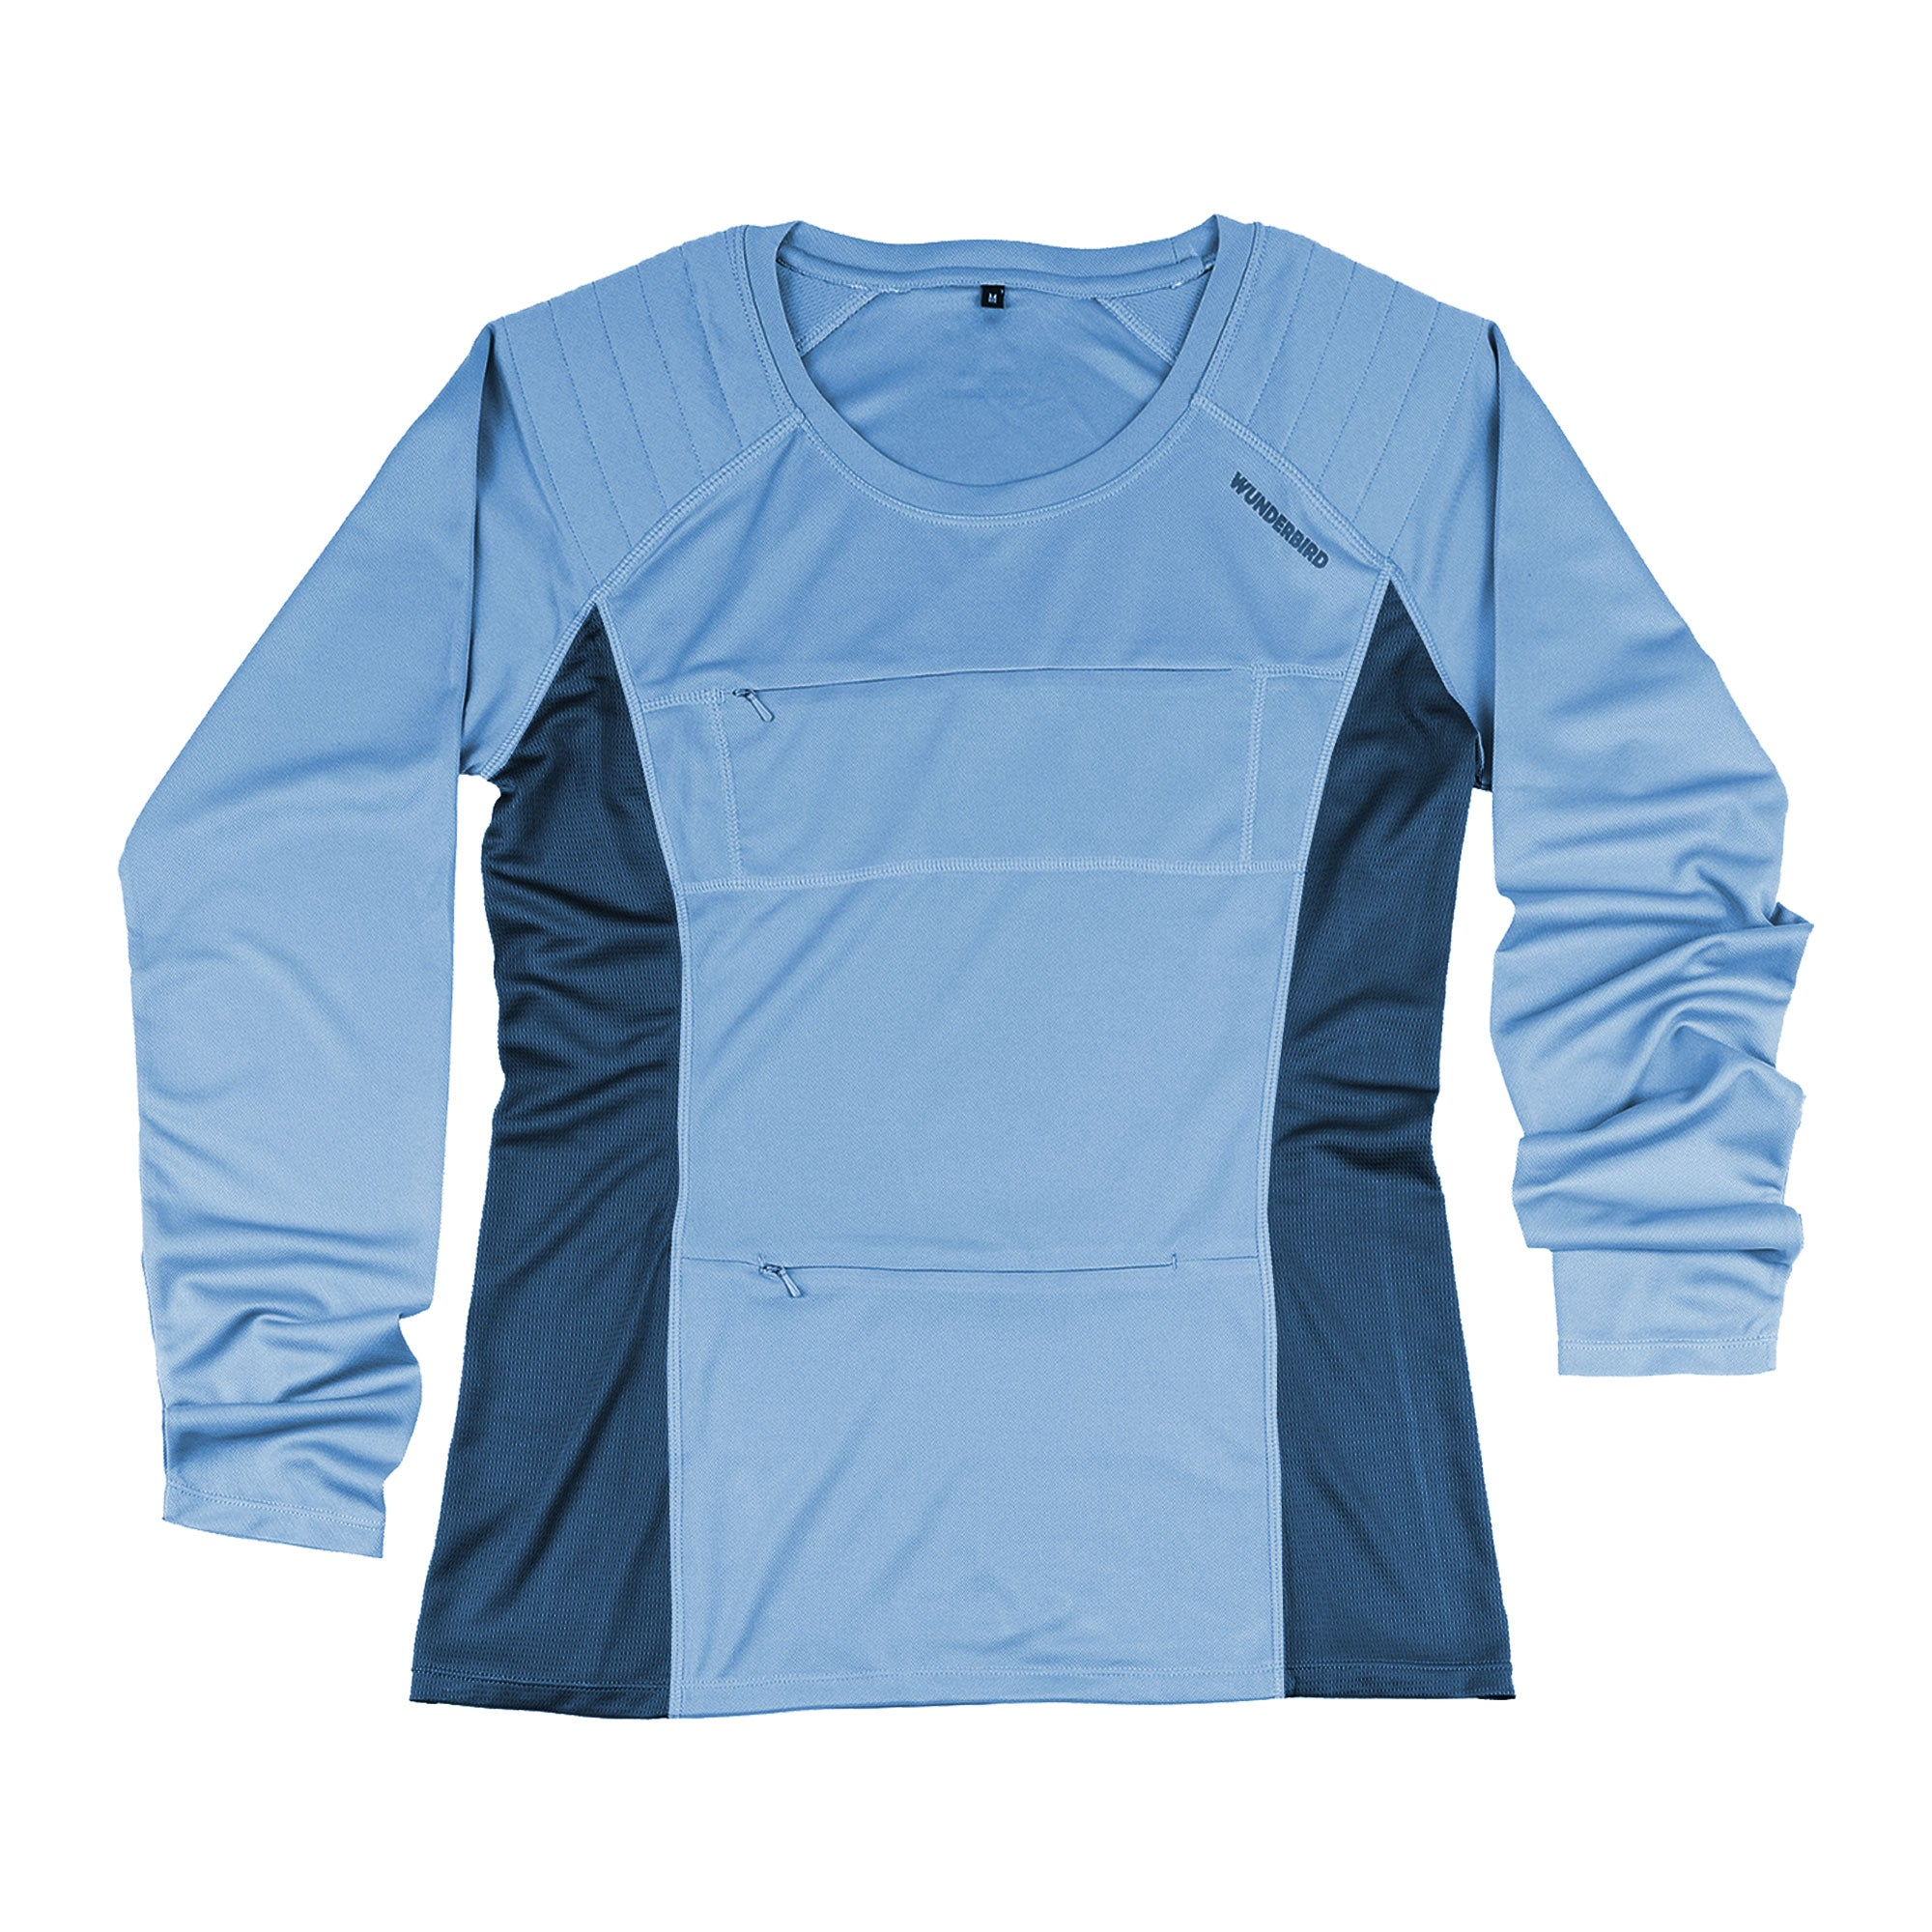 The Peregrine Long Sleeved Tee for birdwatchers - blue